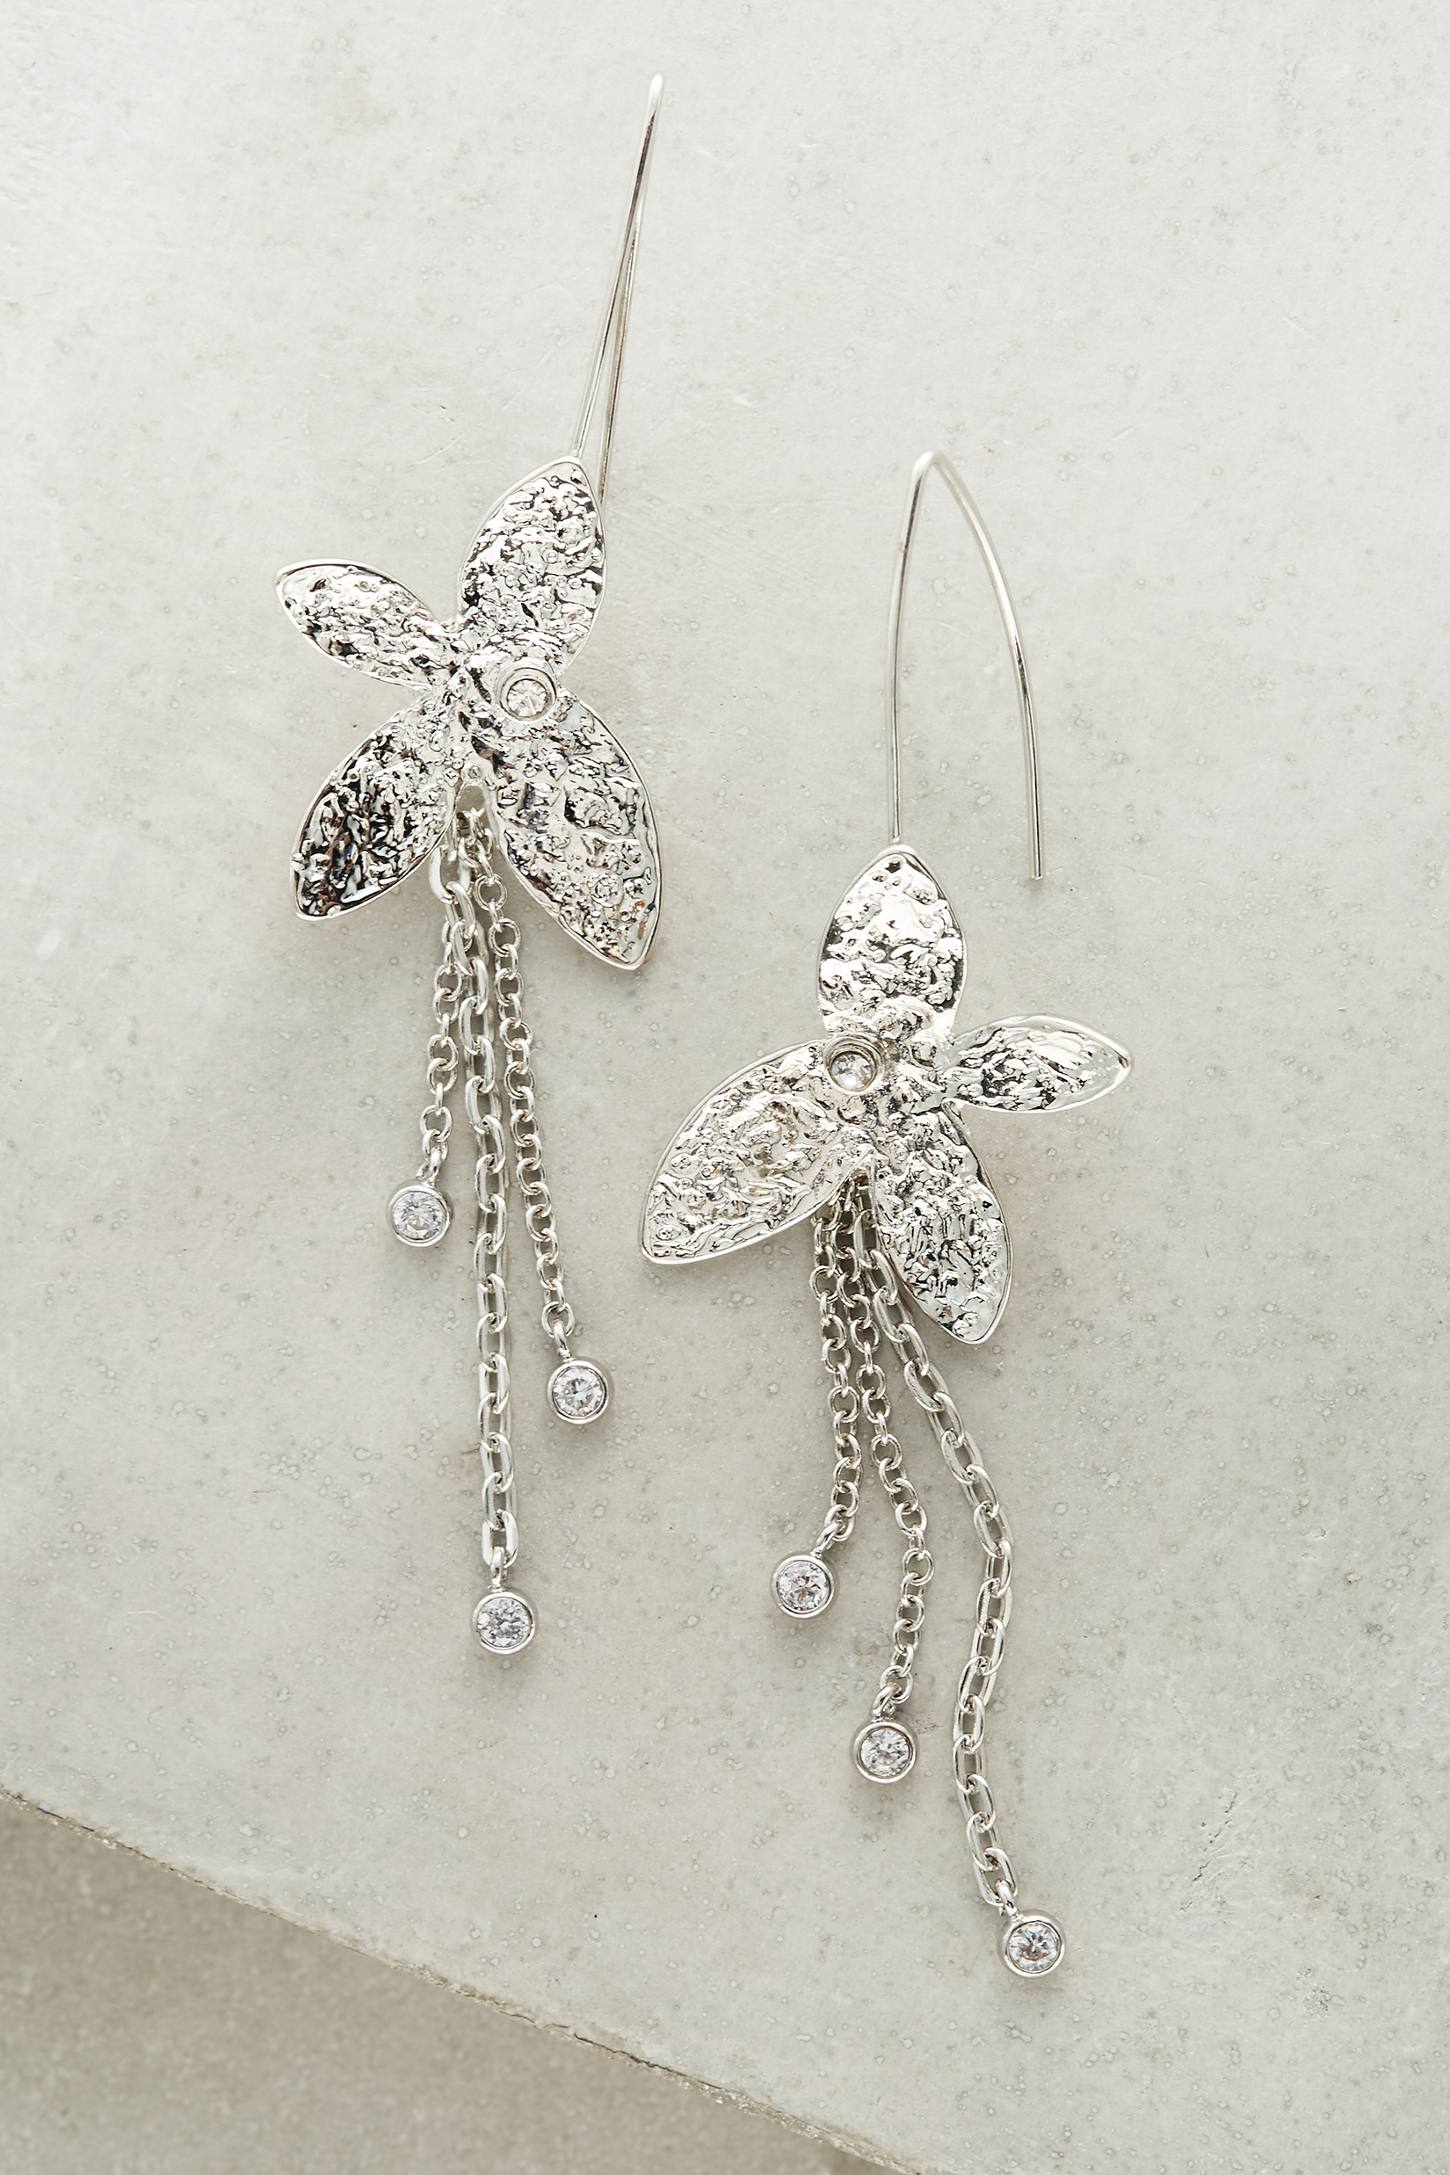 flower-earrings-silver-2016 2